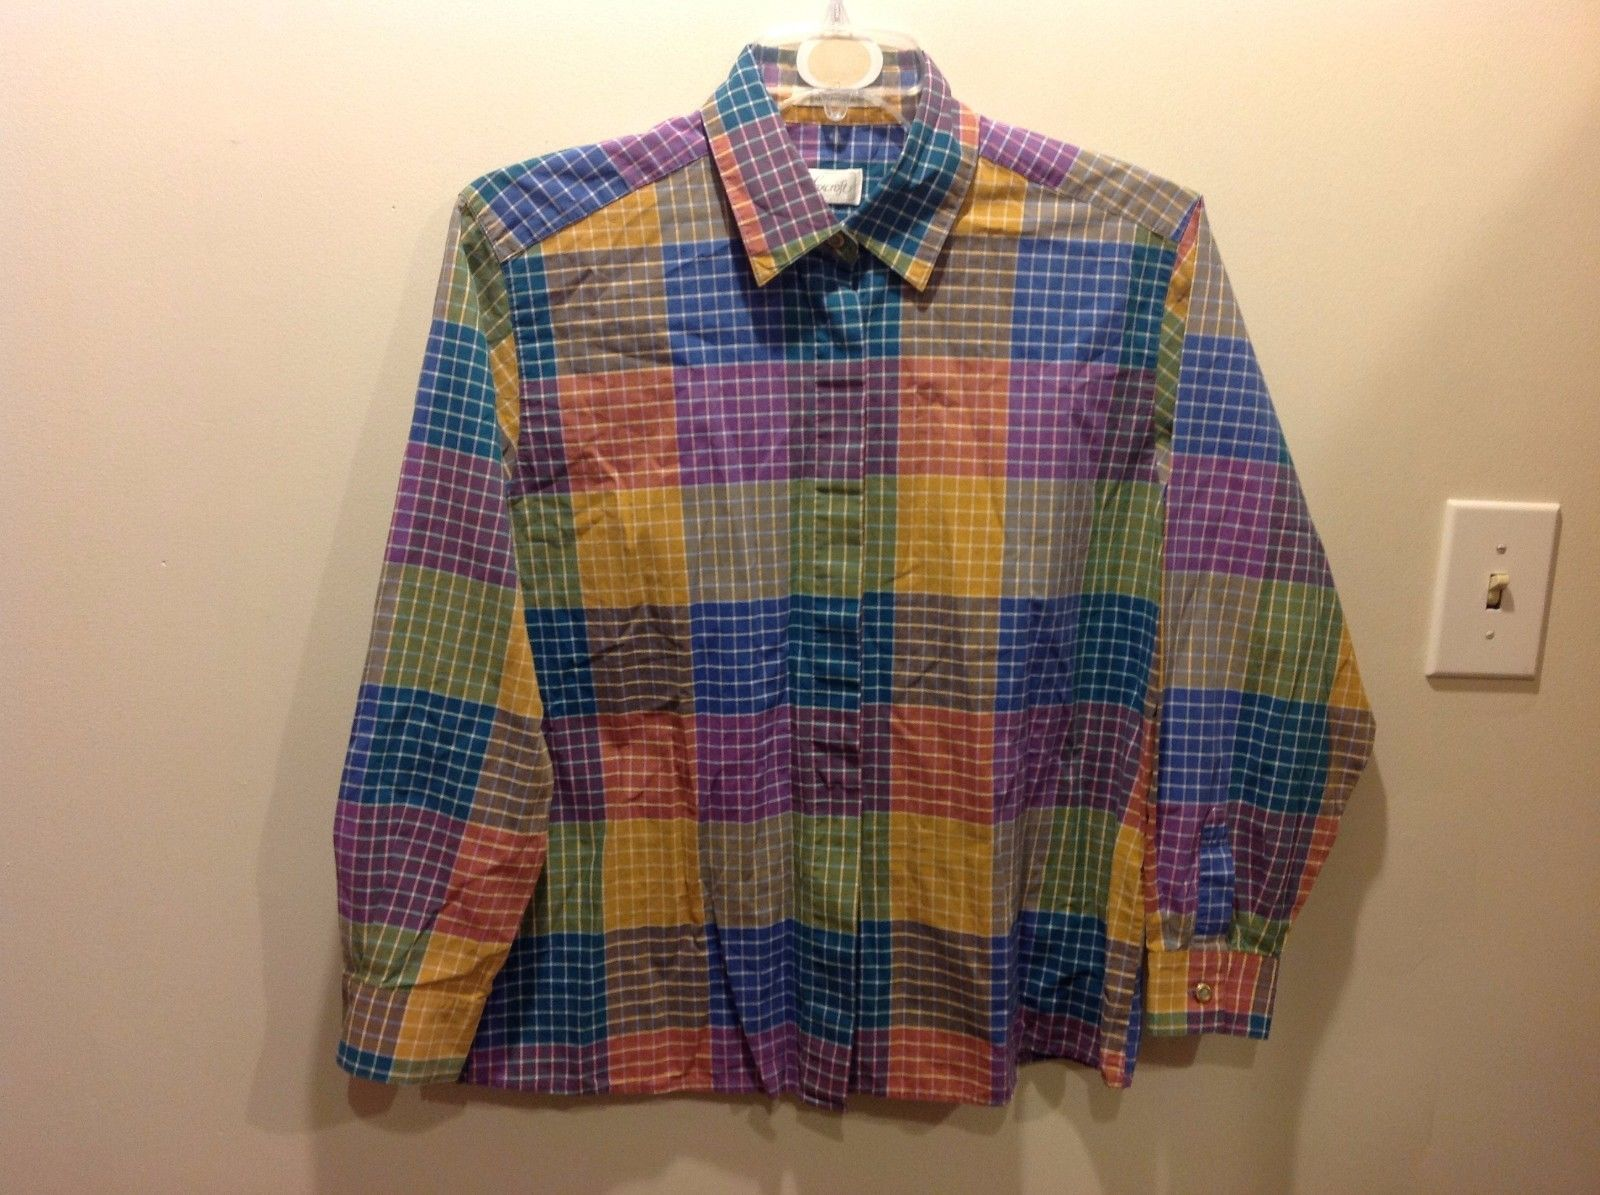 Foxcroft Colored Blocked Grid Pattern Button Up Top Blouse Sz 12